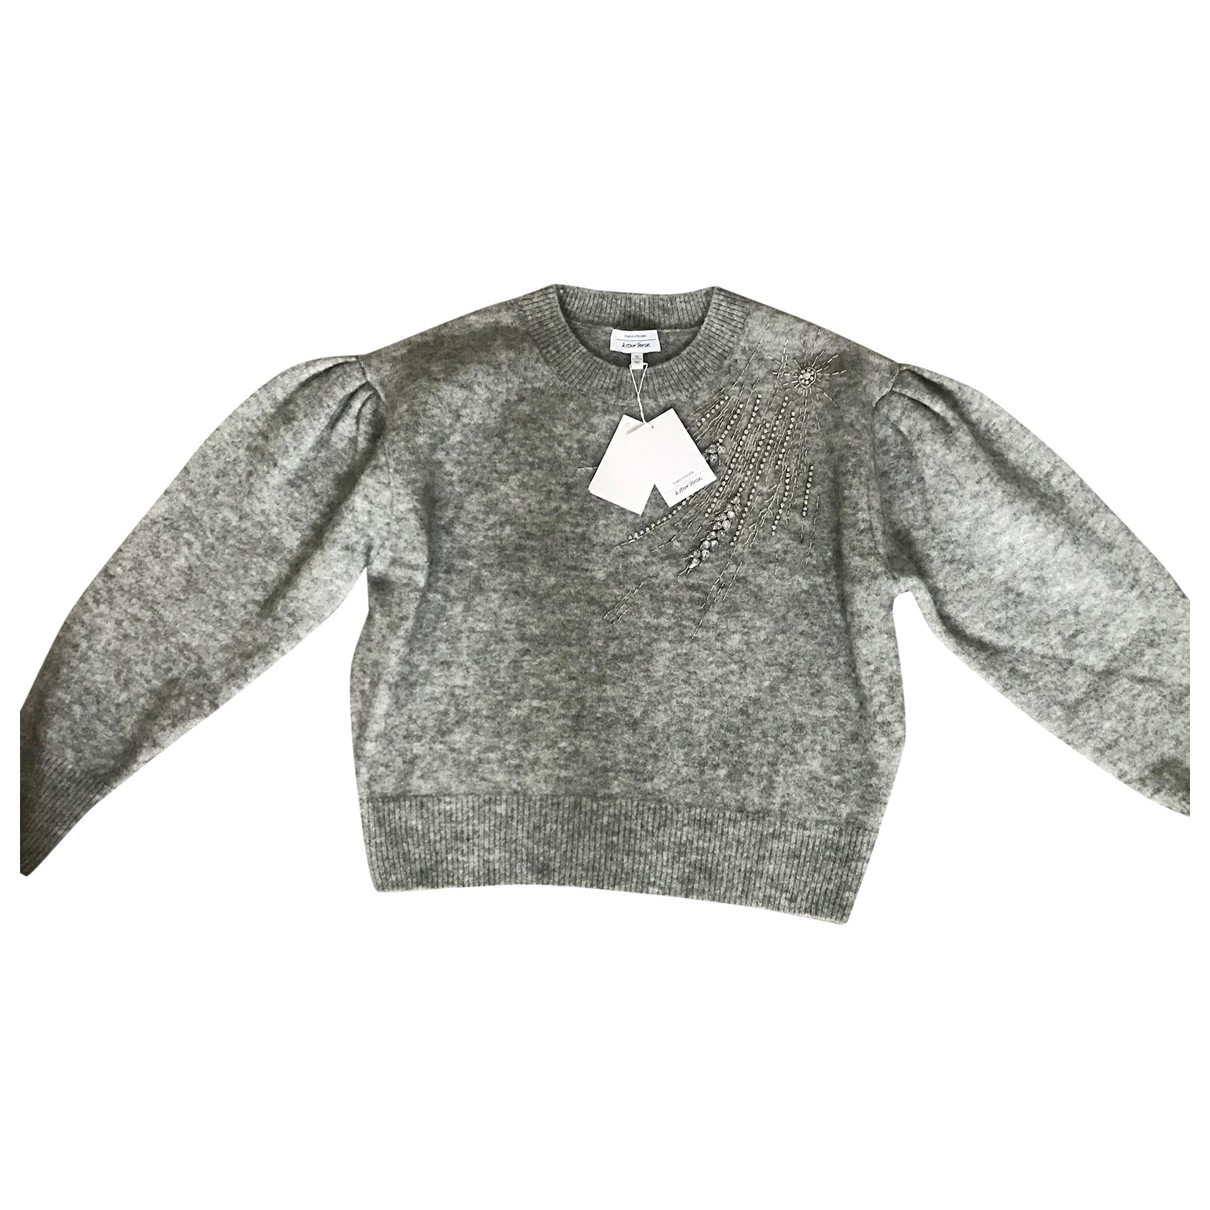 & Other Stories \N Pullover in  Grau Wolle